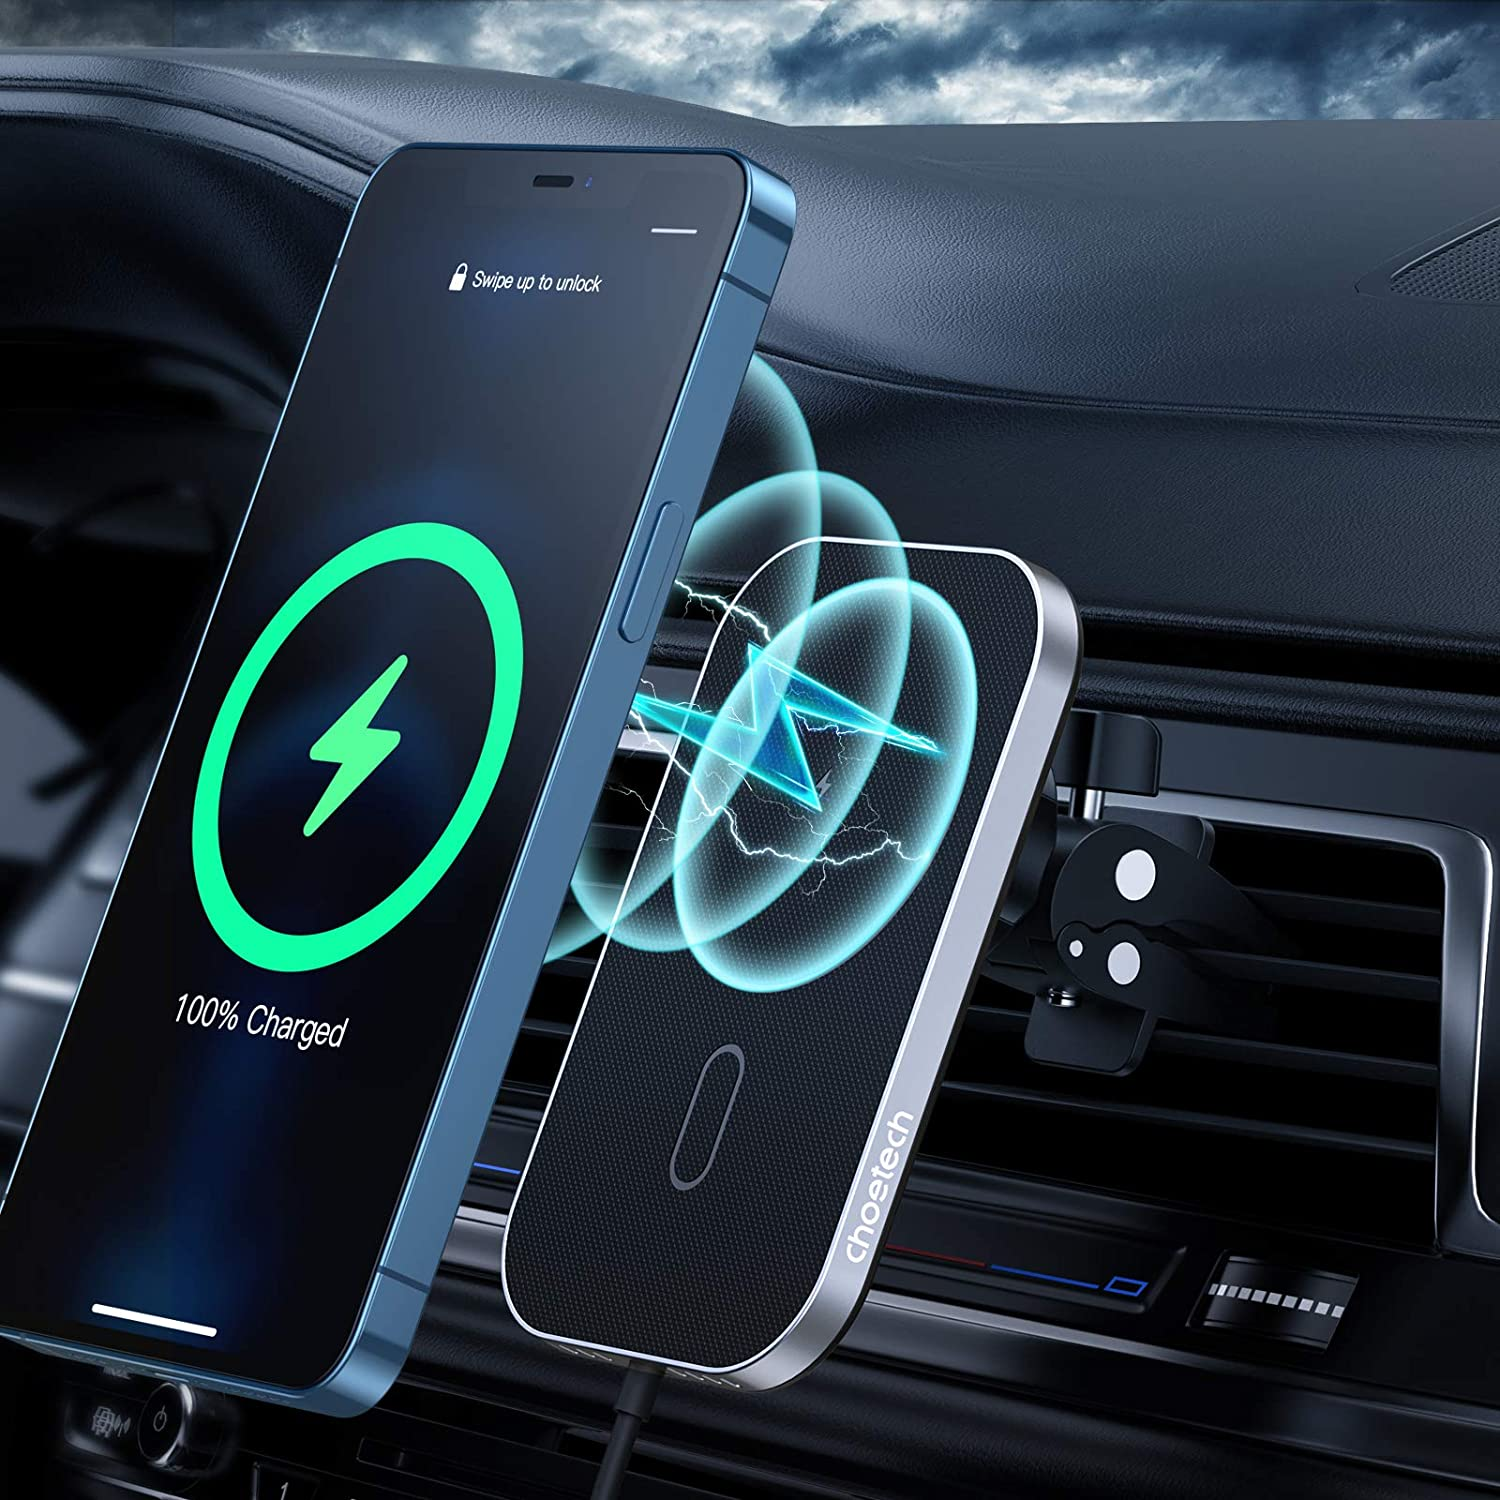 T200 Choetech MagLeap agnetic Wireless Car Charger For iPhone 12 360° Adjustable Auto-Alignment Air Vent CHOETECH